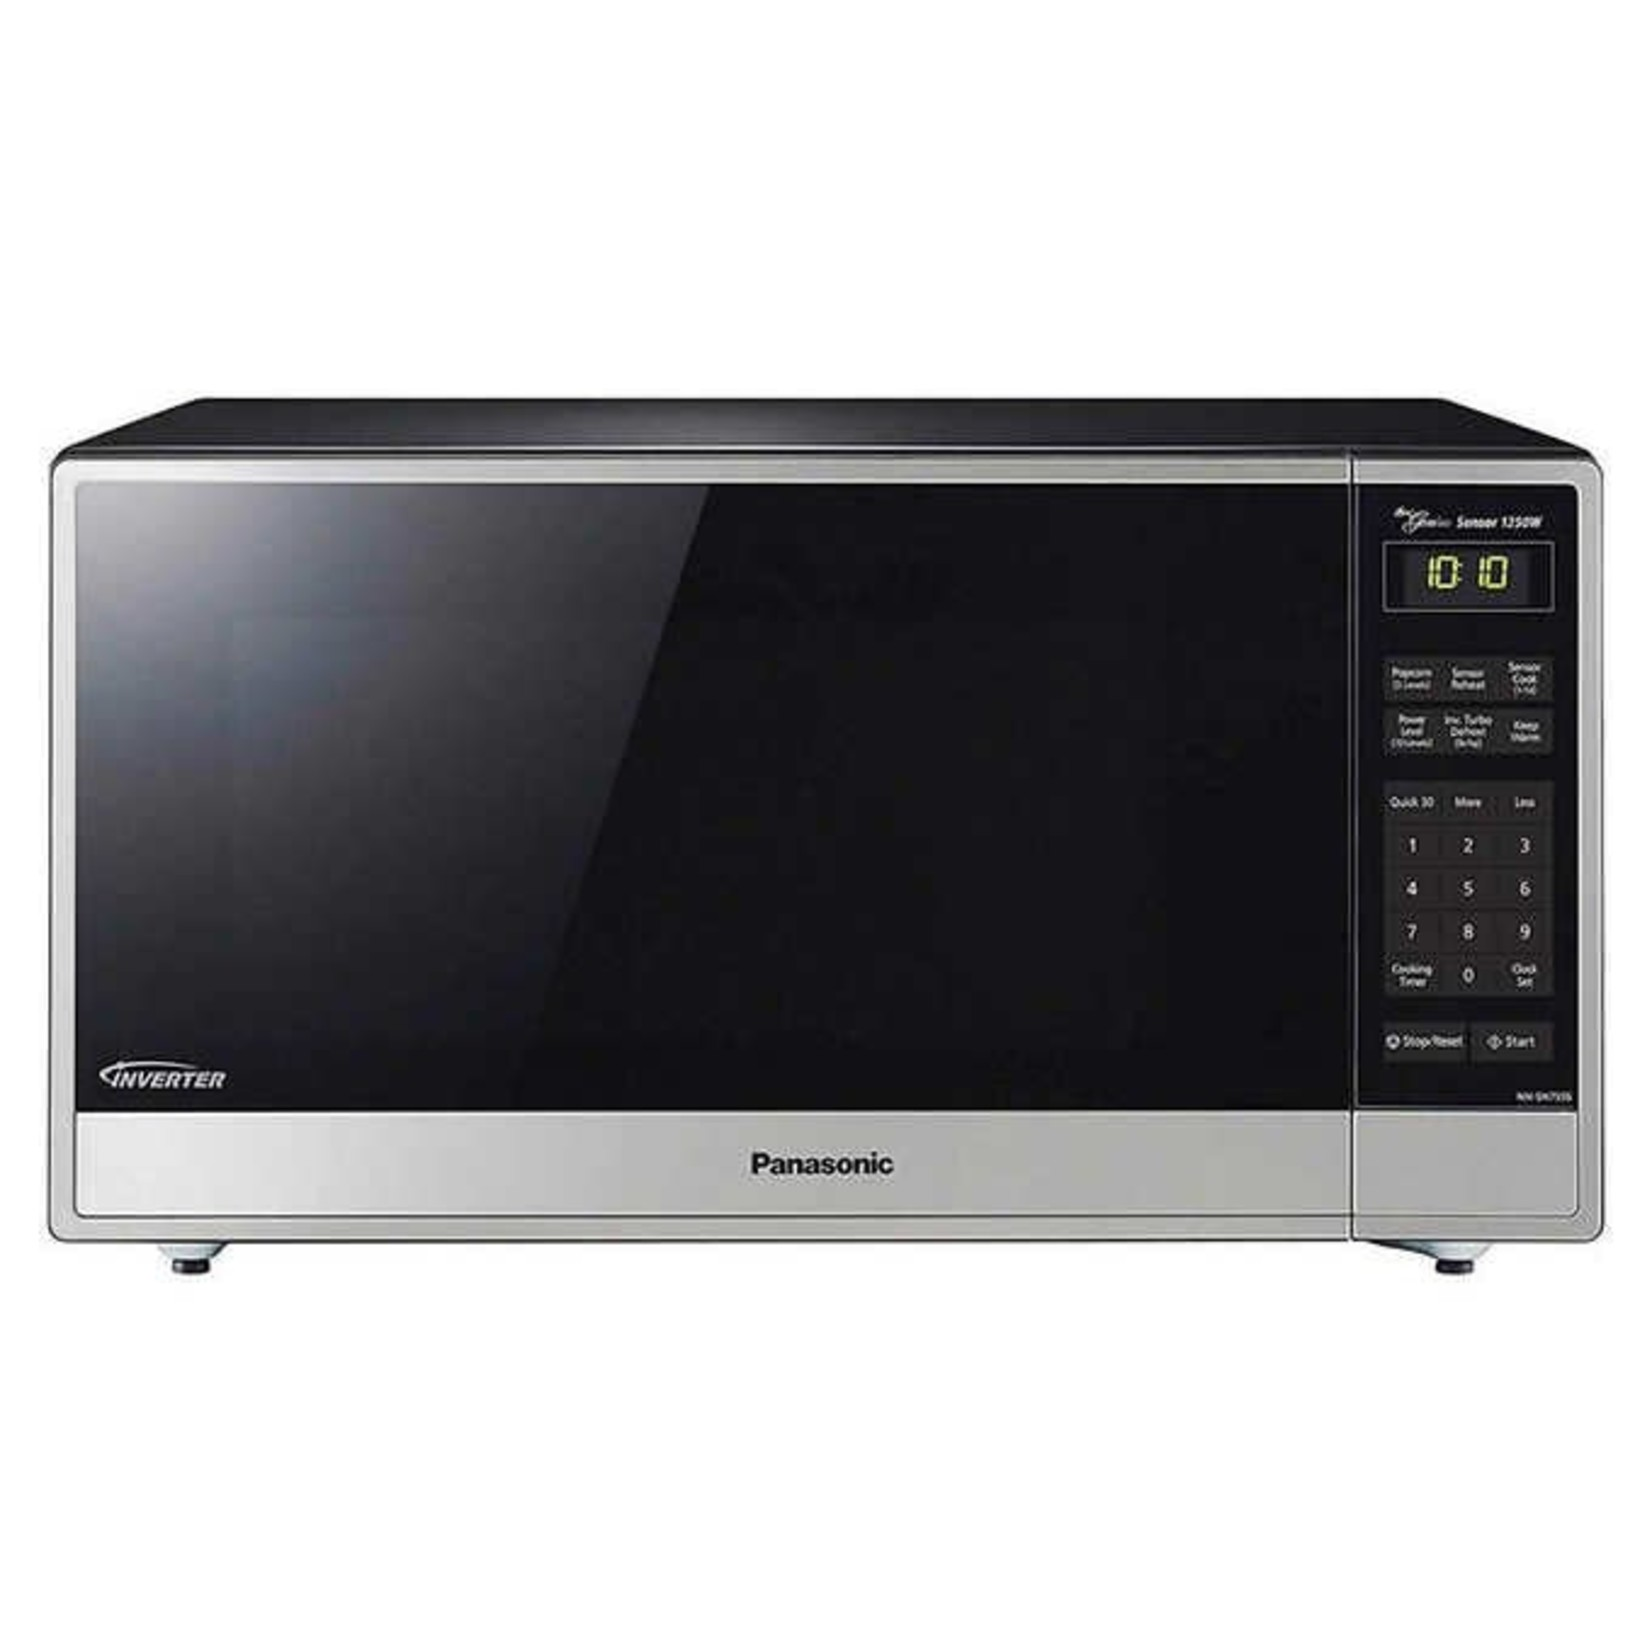 Panasonic 1.6CuFt Countertop Microwave with Genius Inverter Technology, NN-SN755S *New, but dented